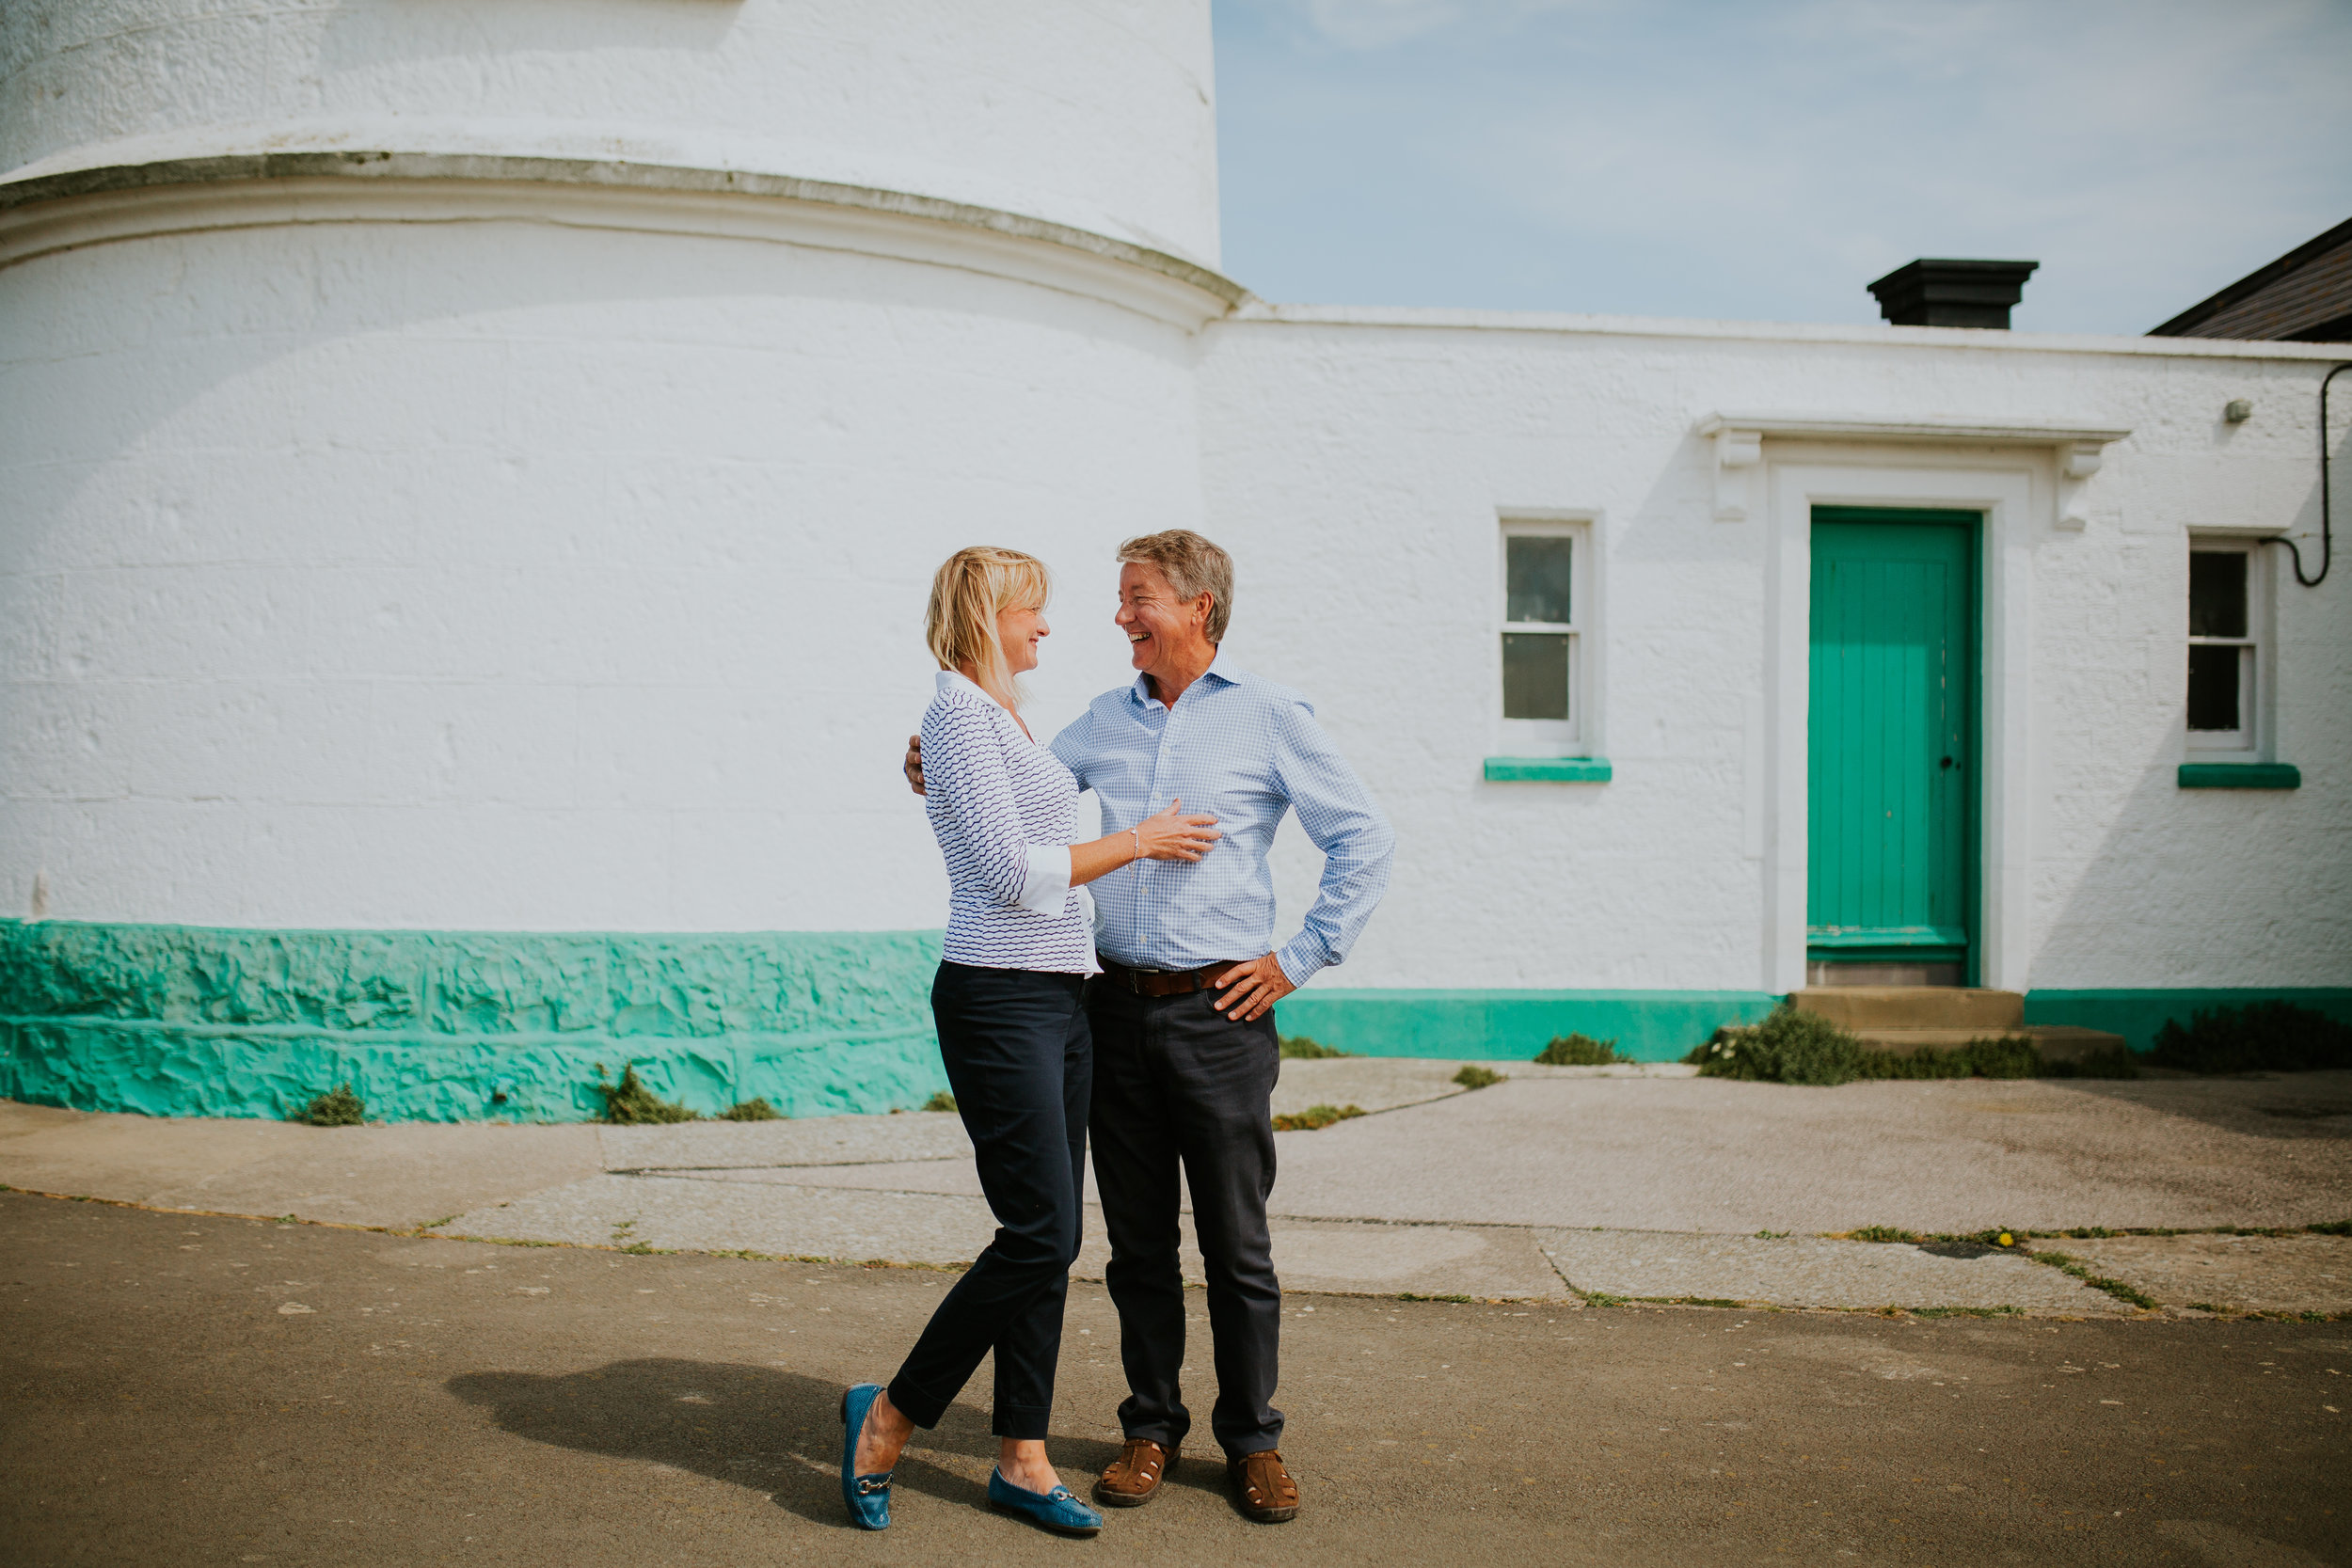 debbie&andrew-pre-wedding-69.jpg